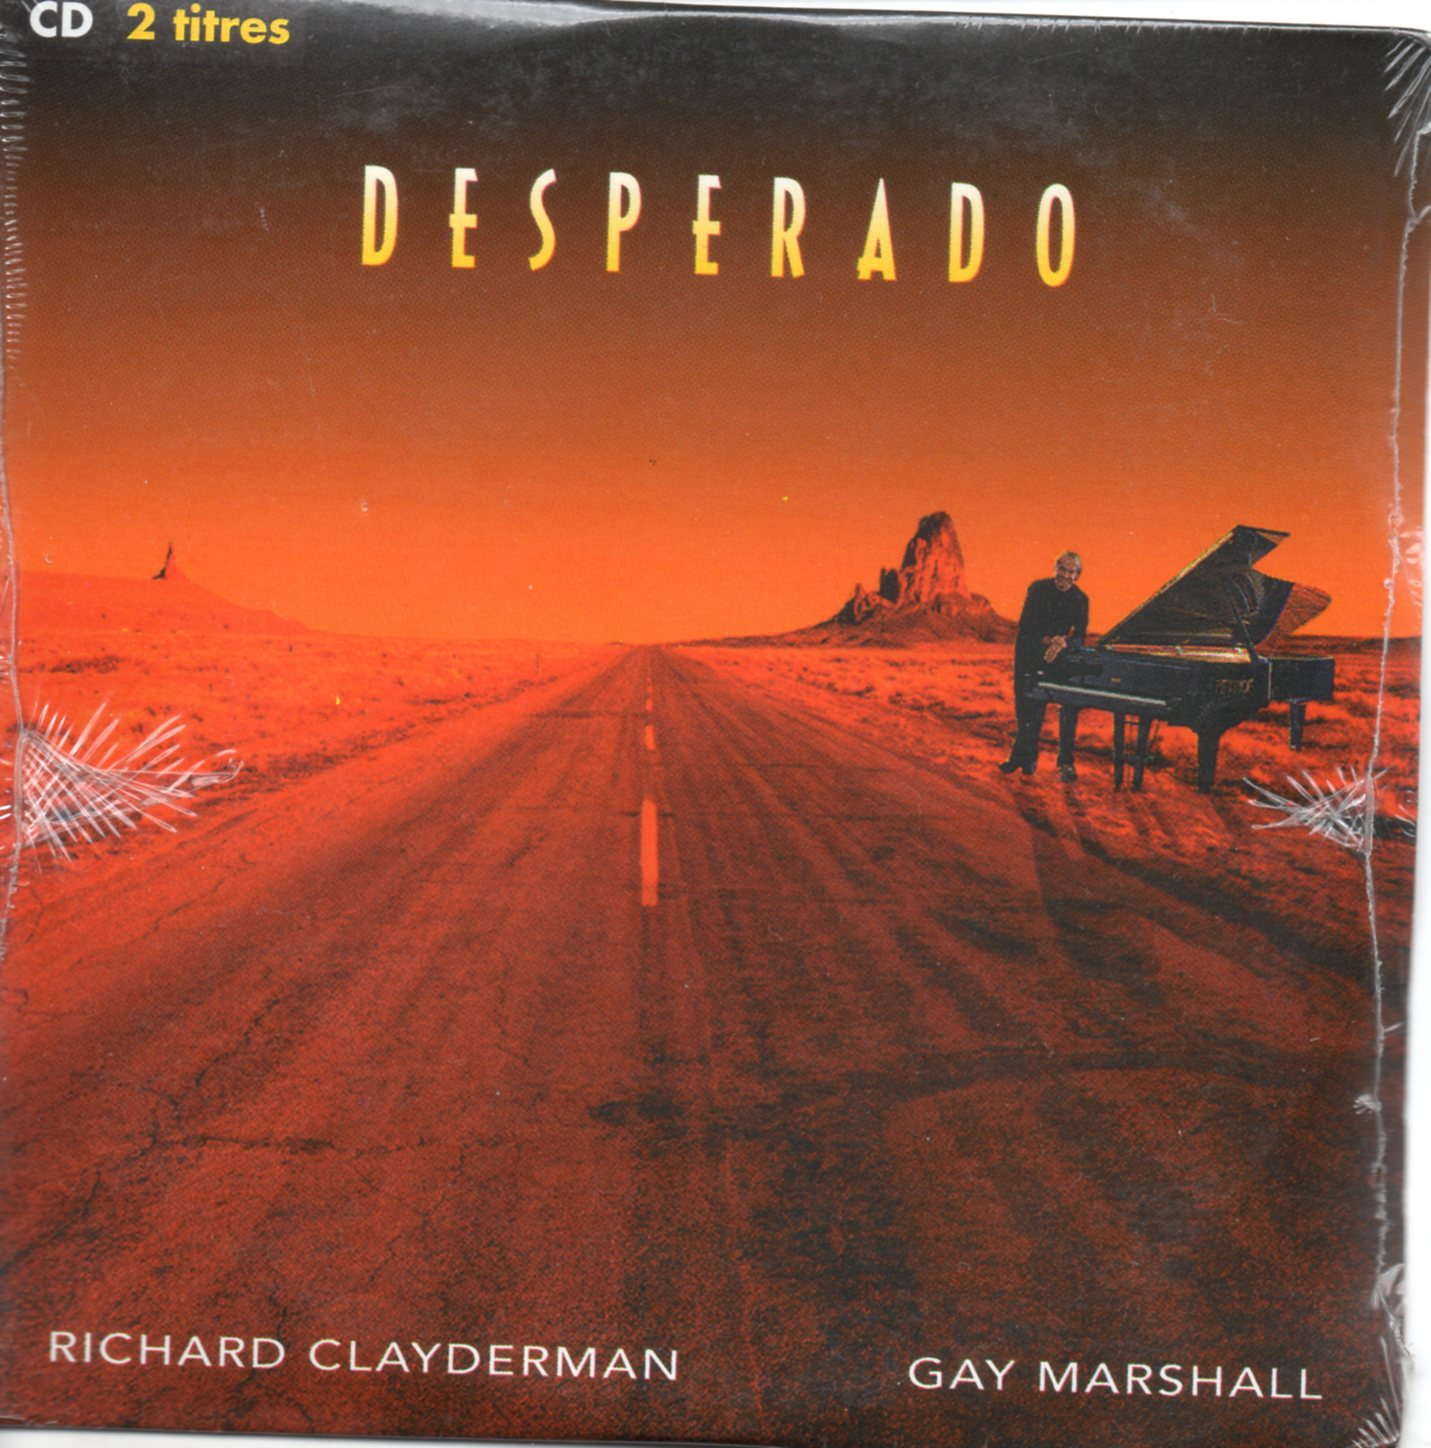 RICHARD CLAYDERMAN & GAY MARSHALL - Desperado 2 tracks CARD SLEEVE - CD single